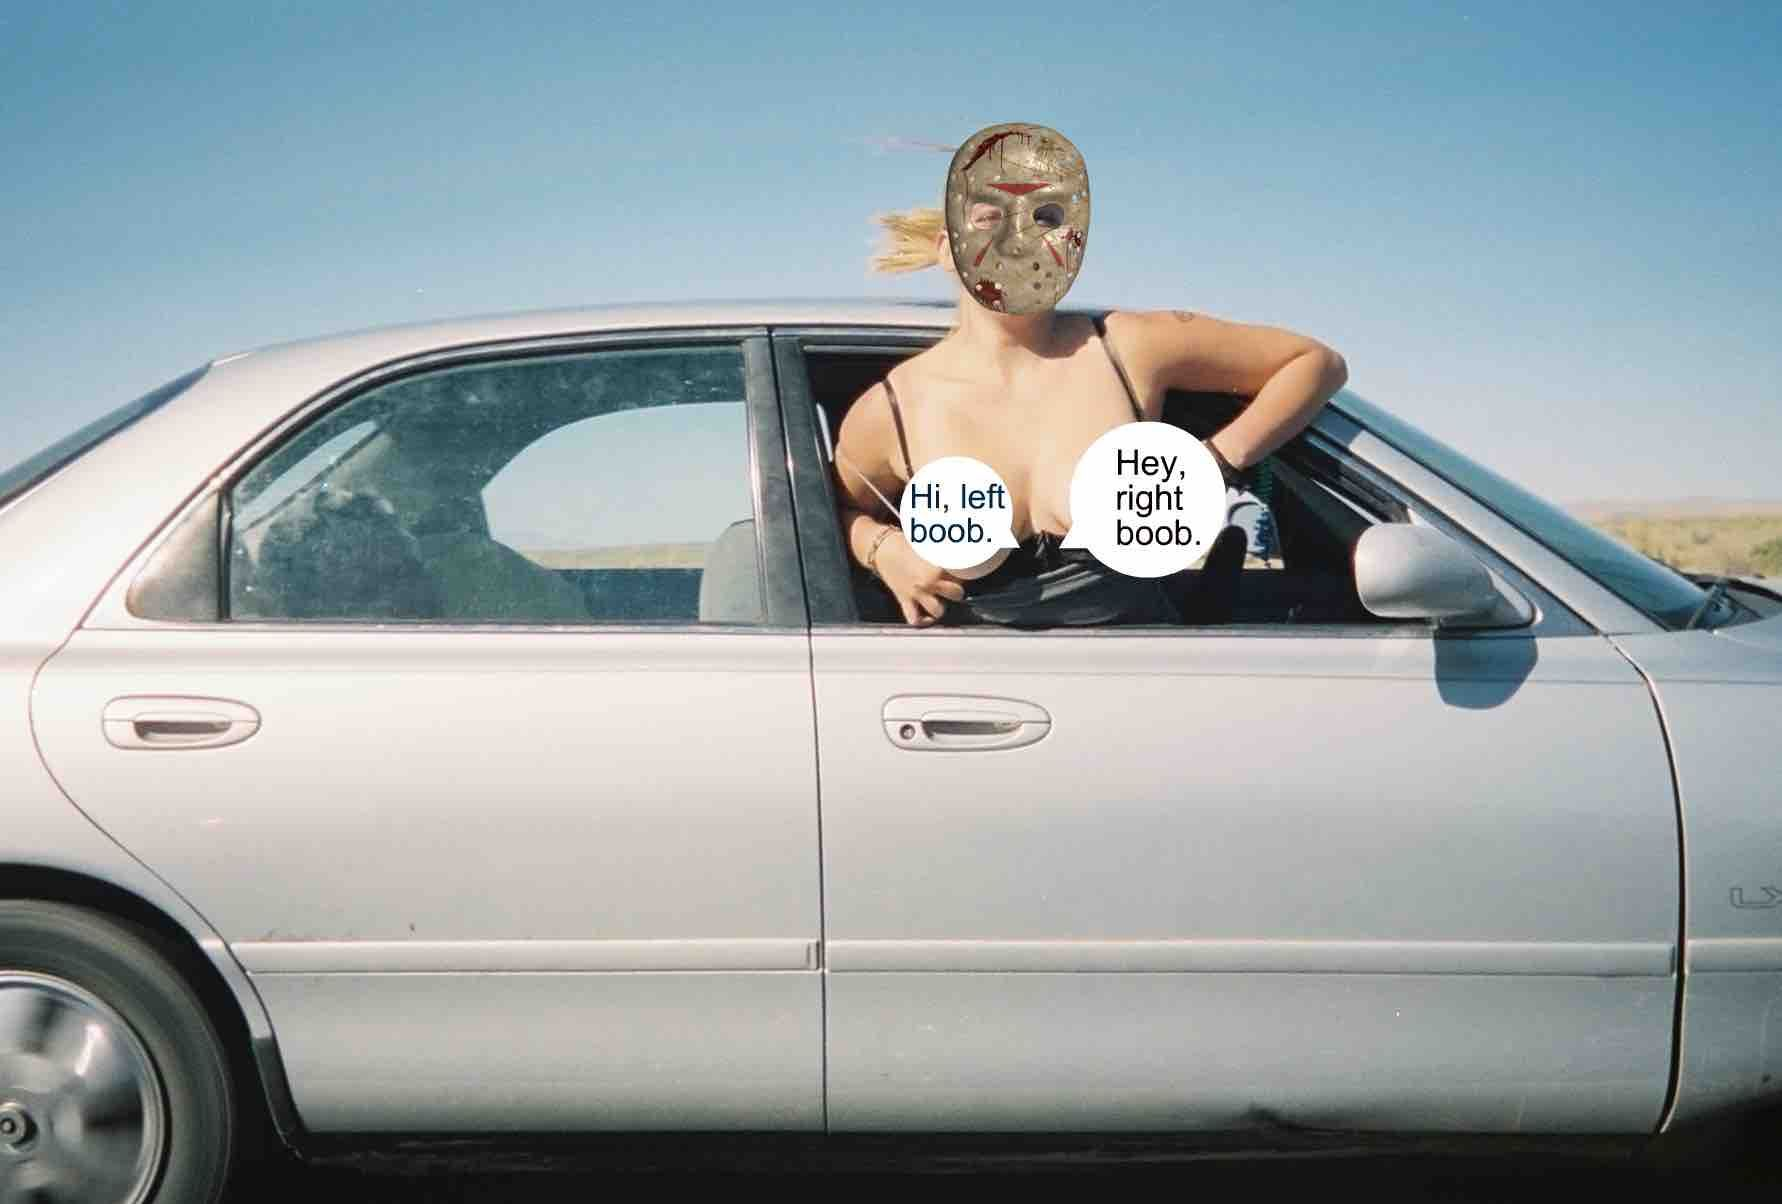 two women arrested for flashing out of car window | welcome to